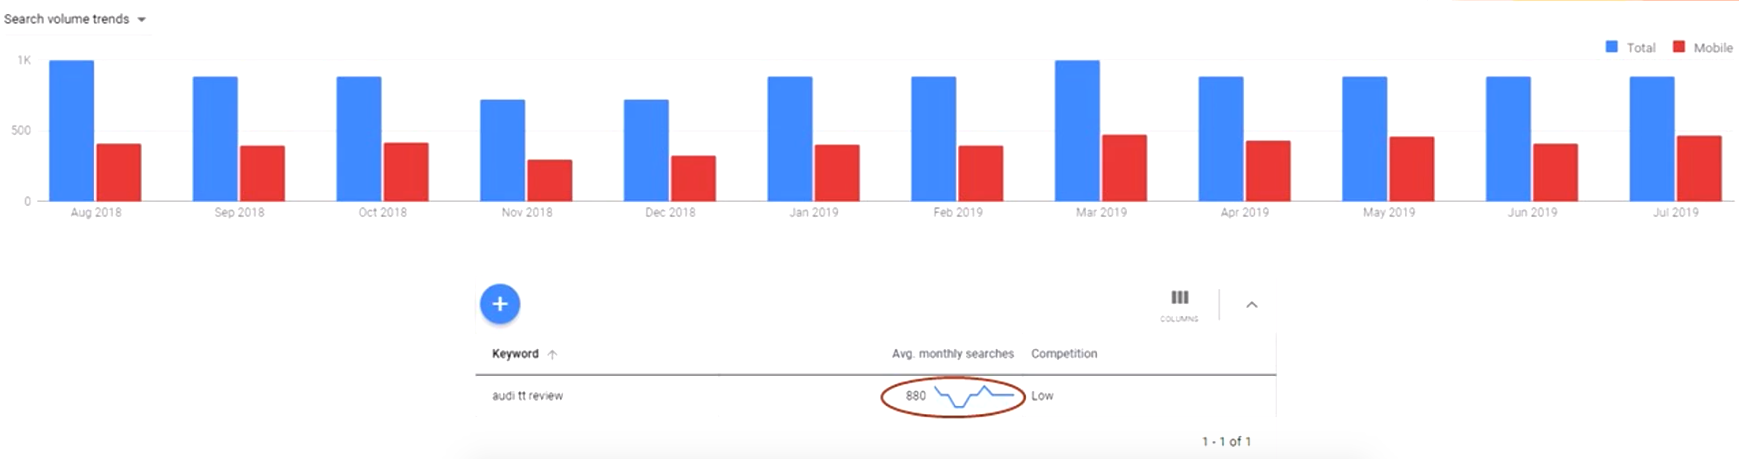 Weekly Wisdom with Itamar Blauer: YouTube Keyword Research. Image 4